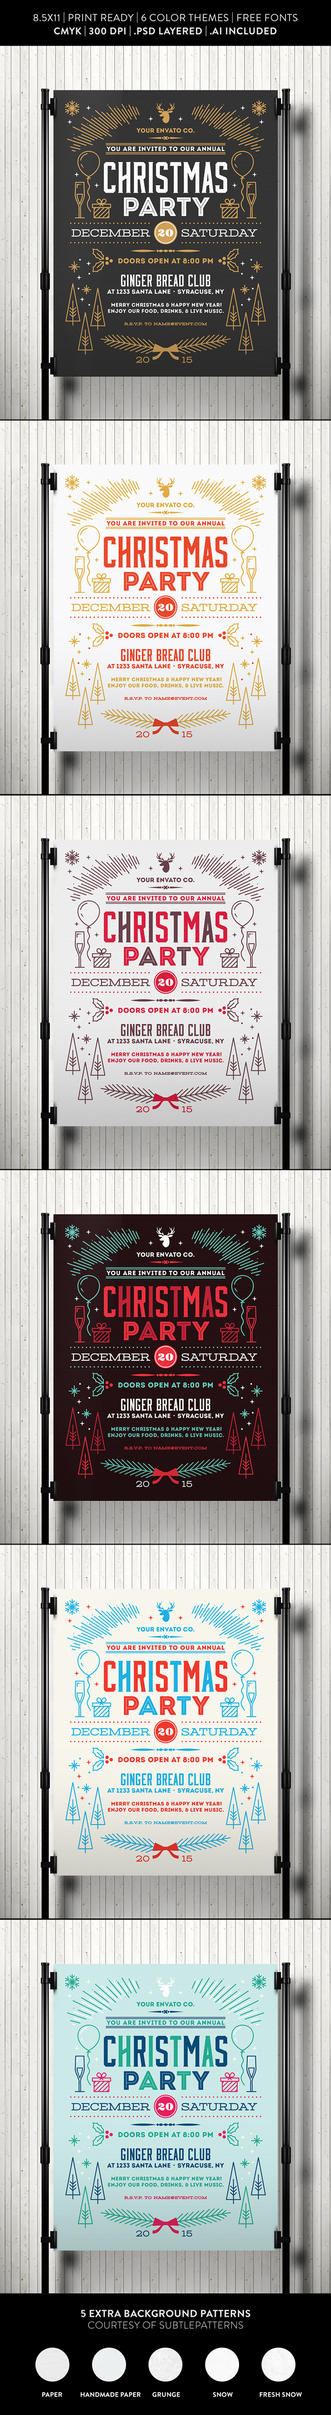 Christmas Party Flyer Template by jamiefang